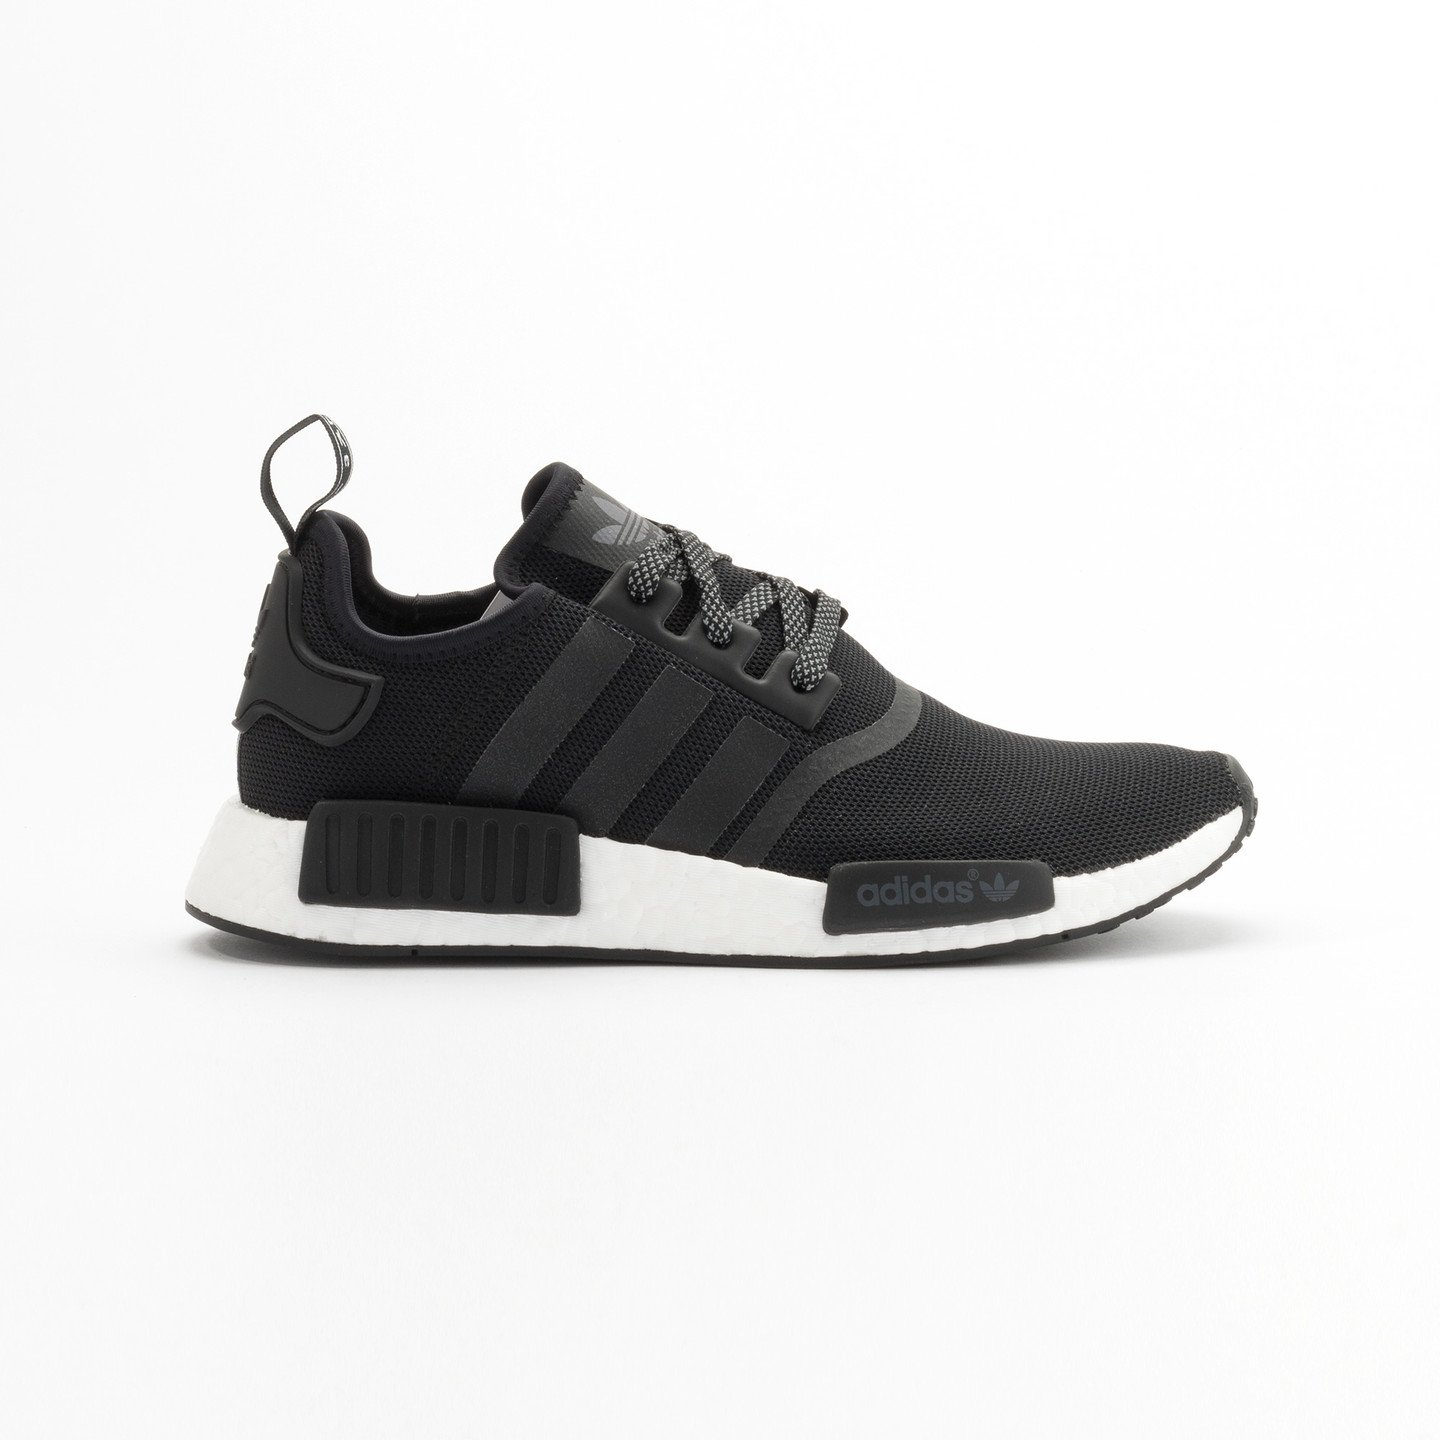 Adidas NMD R1 Runner Core Black Reflective / Ftwr White S31505-46